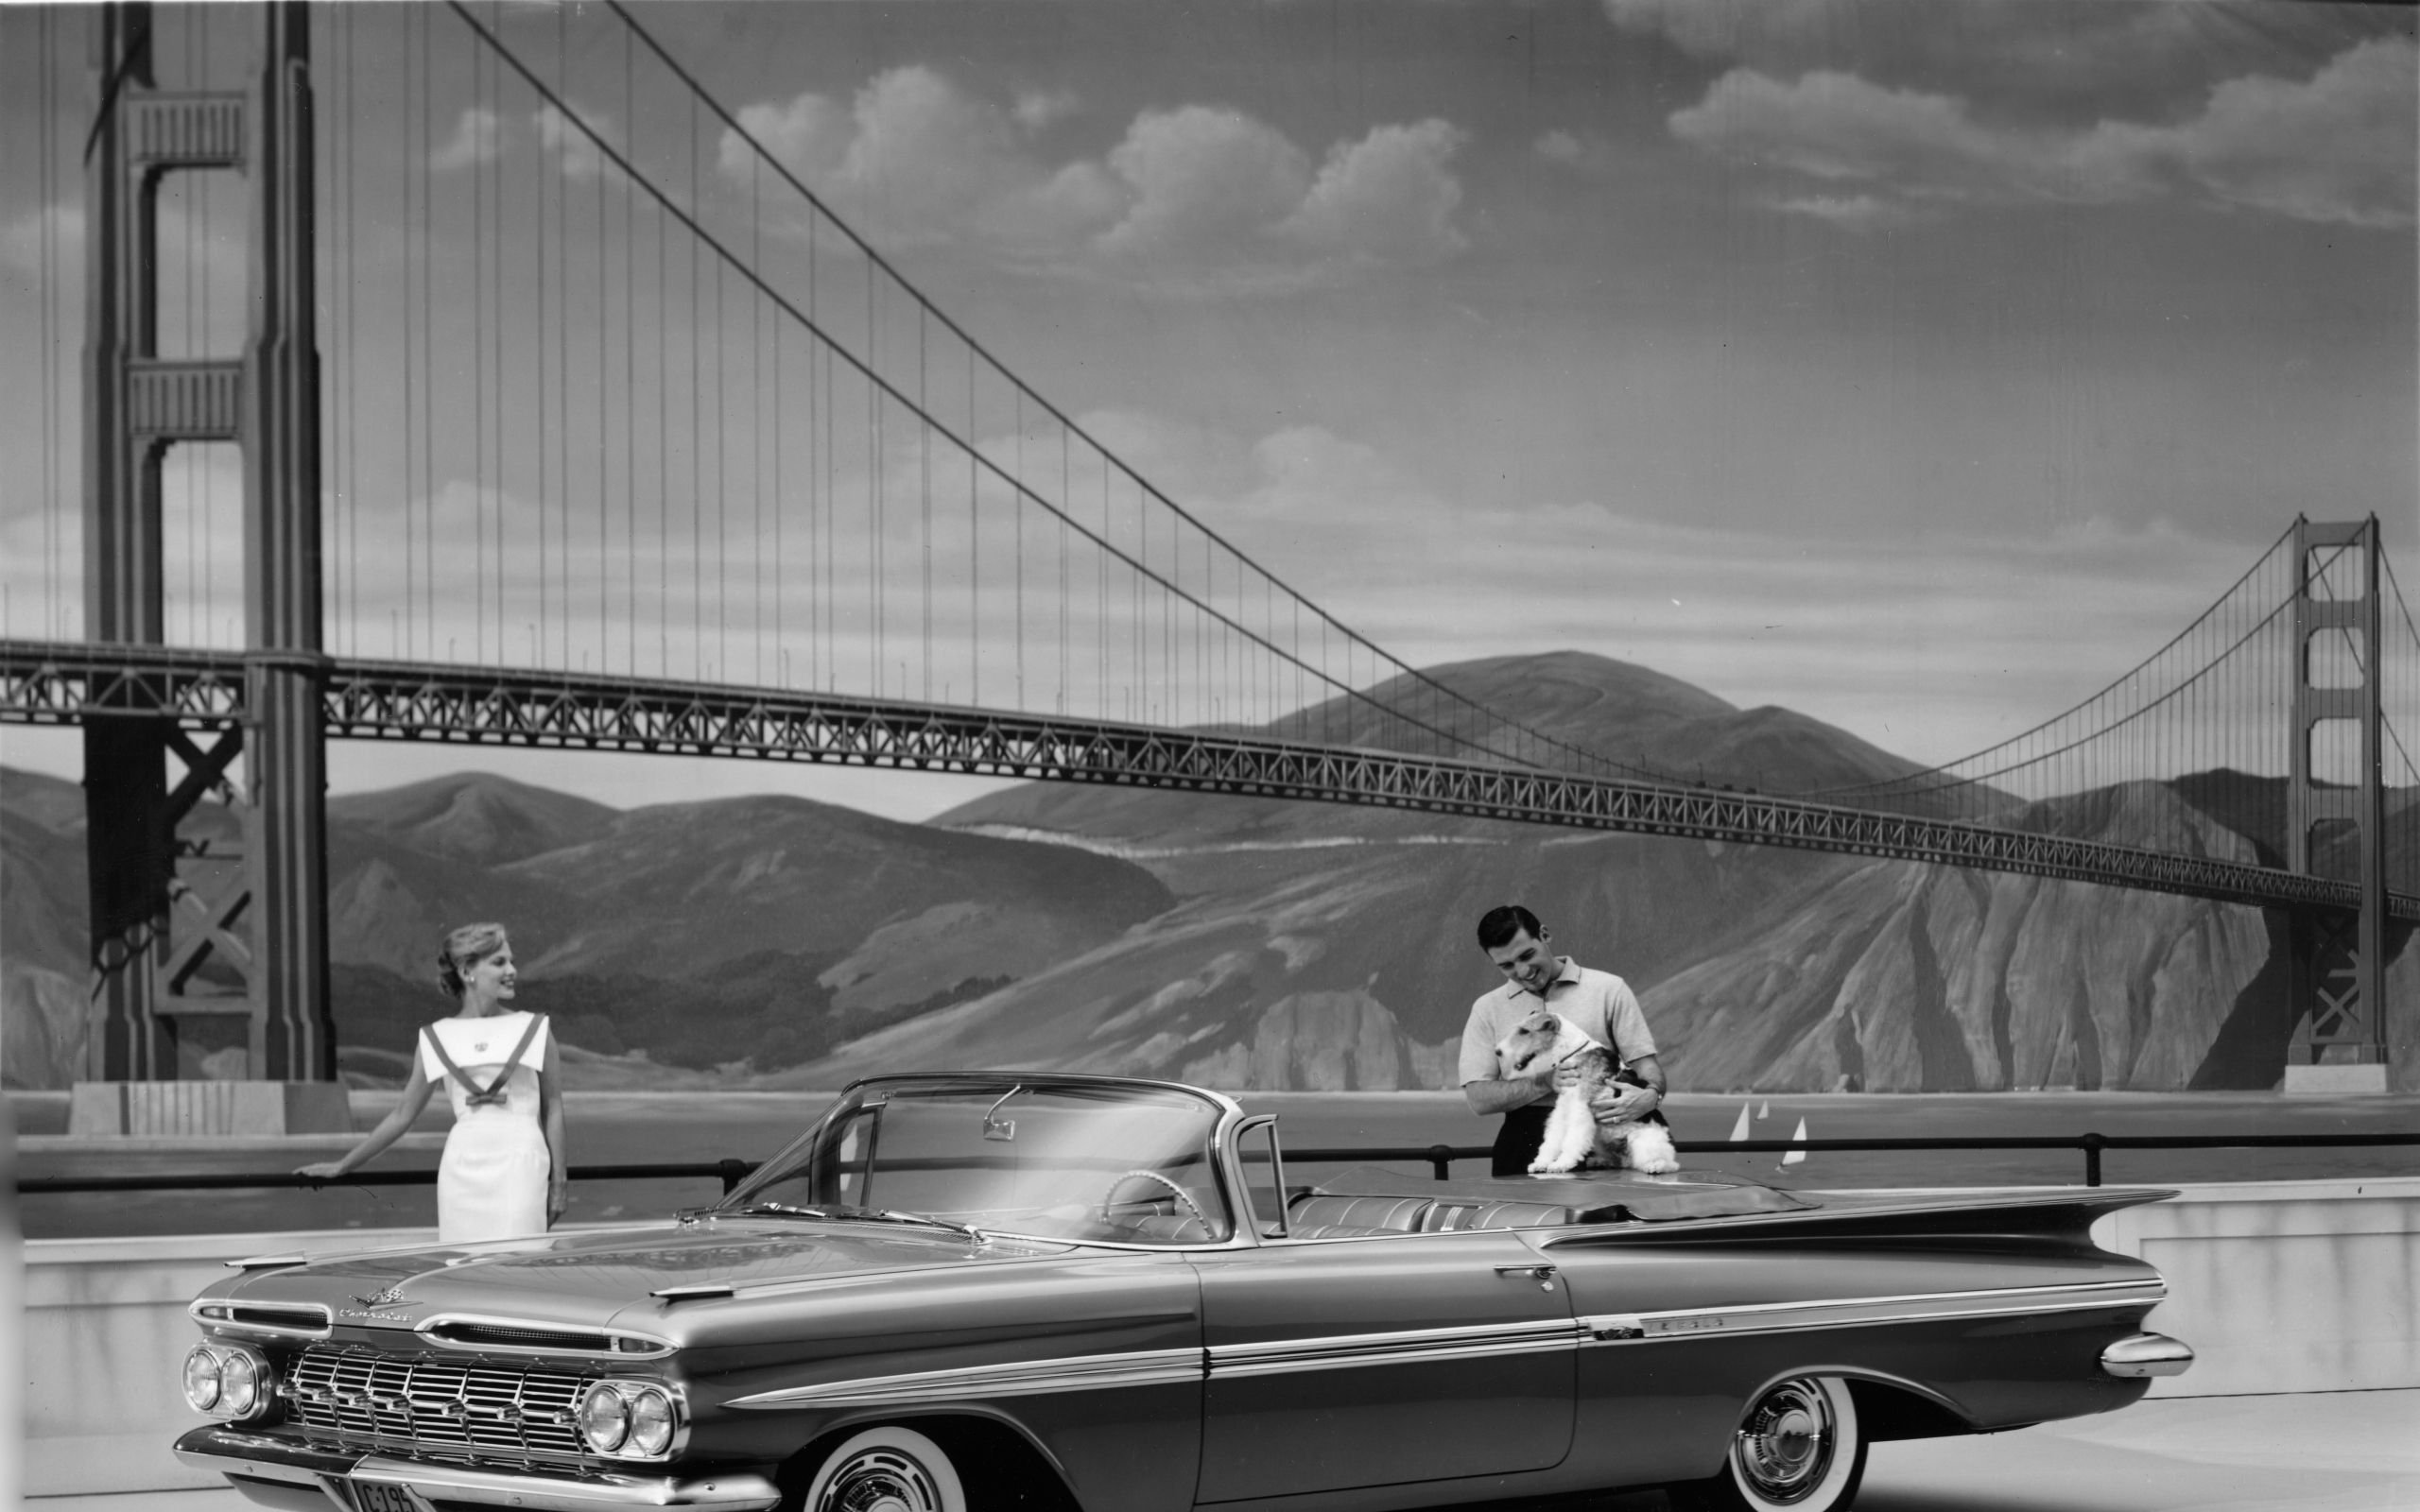 Vintage Bridges Vintage Cars Golden Gate Bridge Monochrome